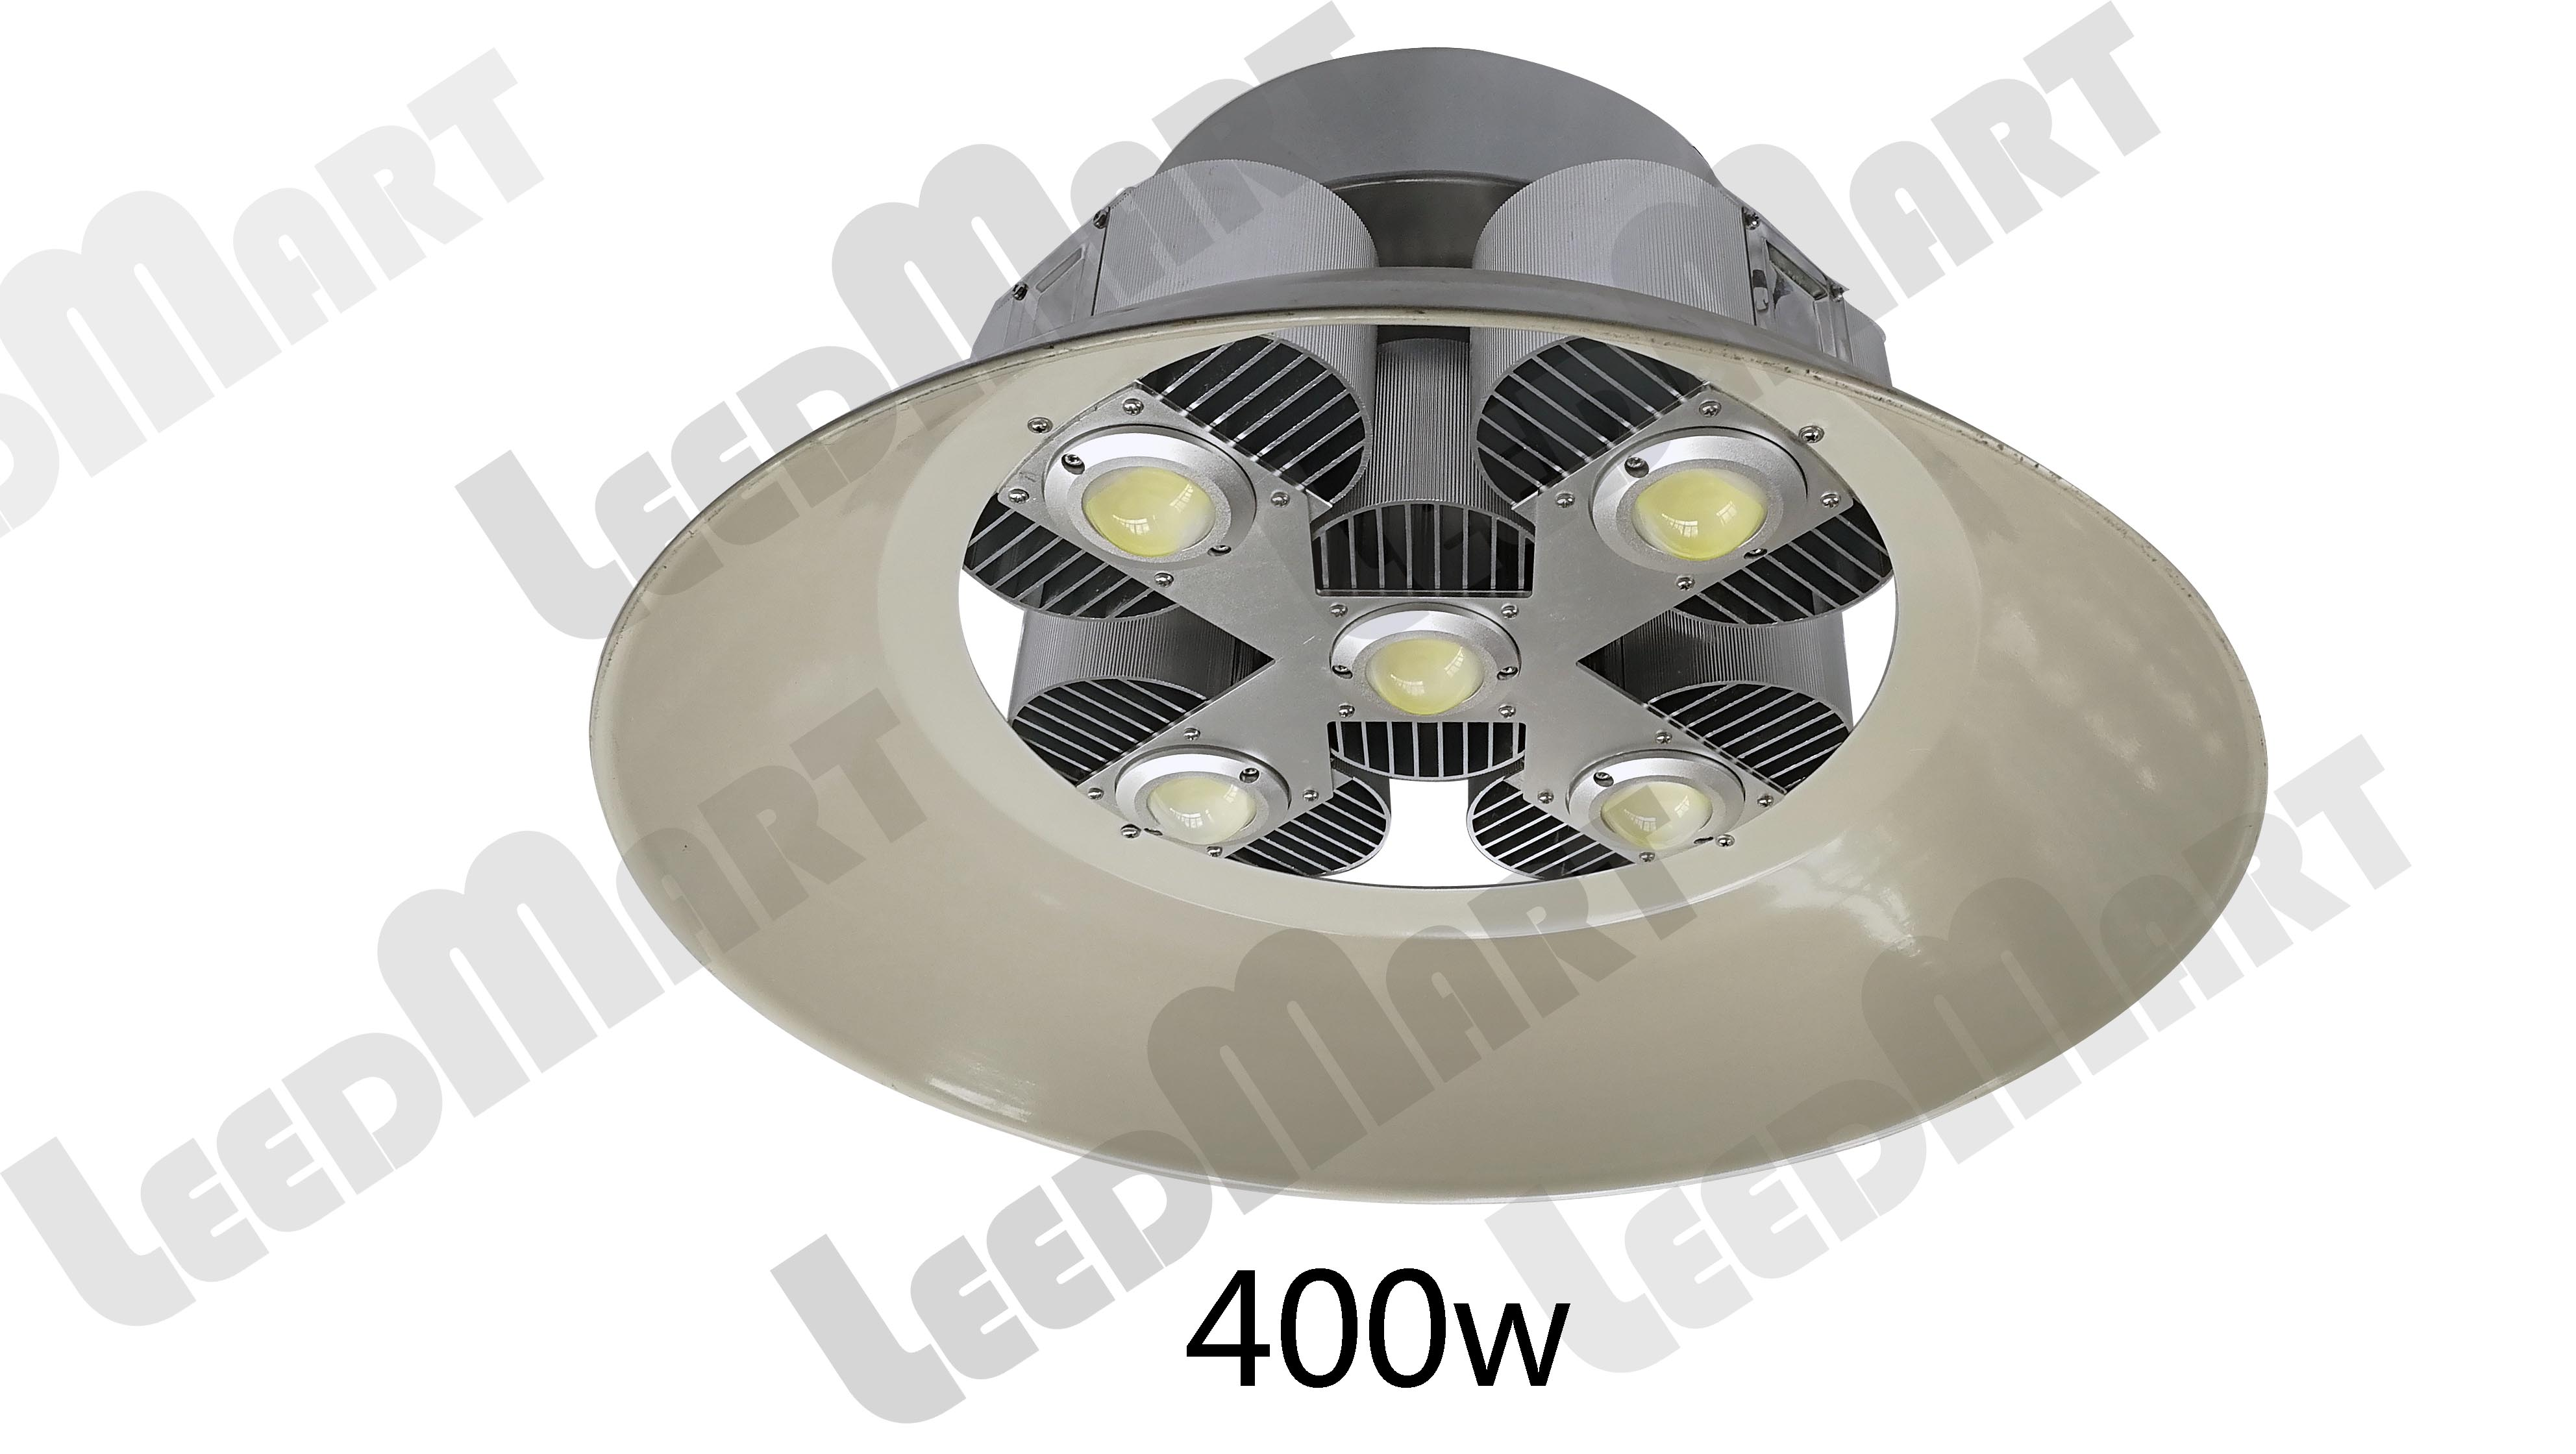 Dustproof 100w-600w white integrated LED high bay light high quality